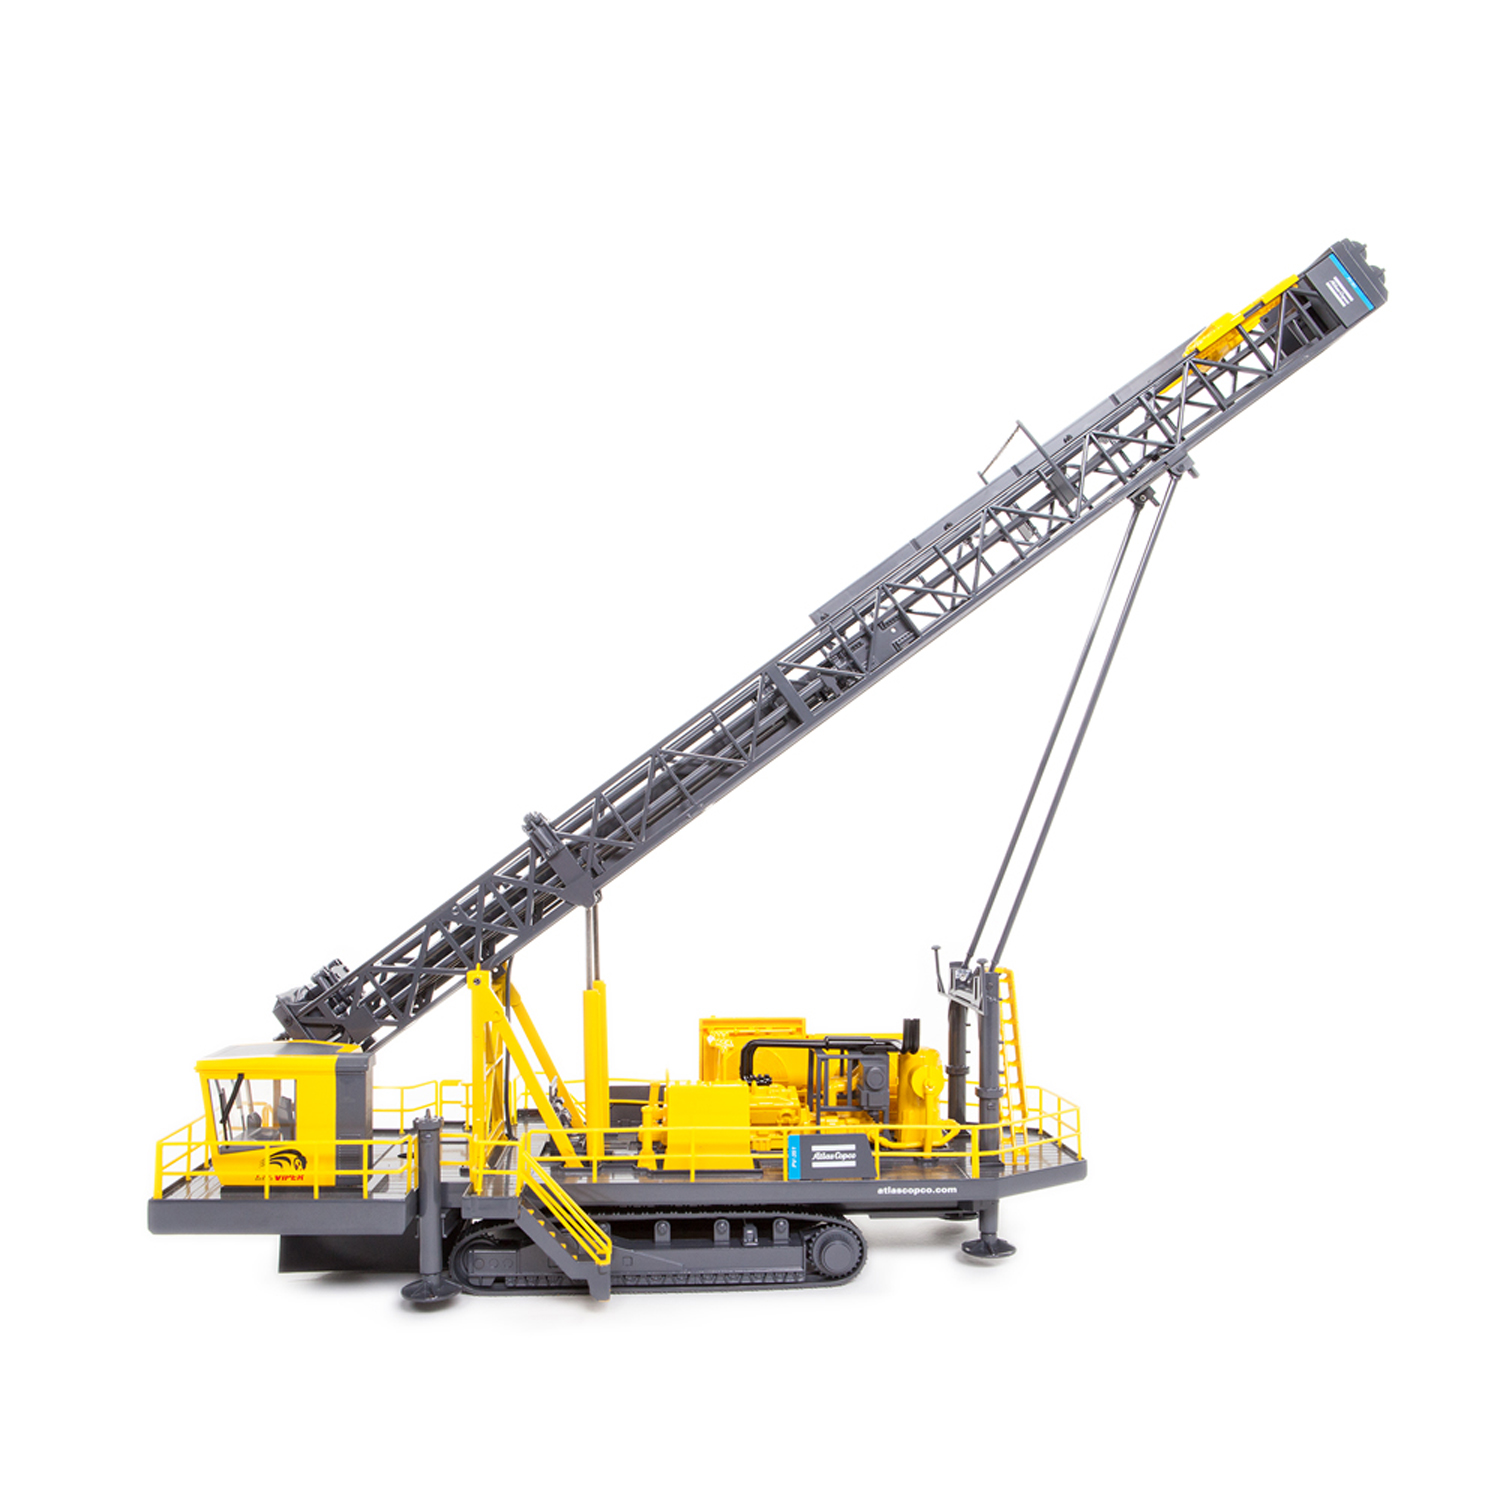 drill and blast Construction blasting service, controlled blasting service, quarry blasting service whether it is large production blasts to vibration sensitive civil work, dynamic.